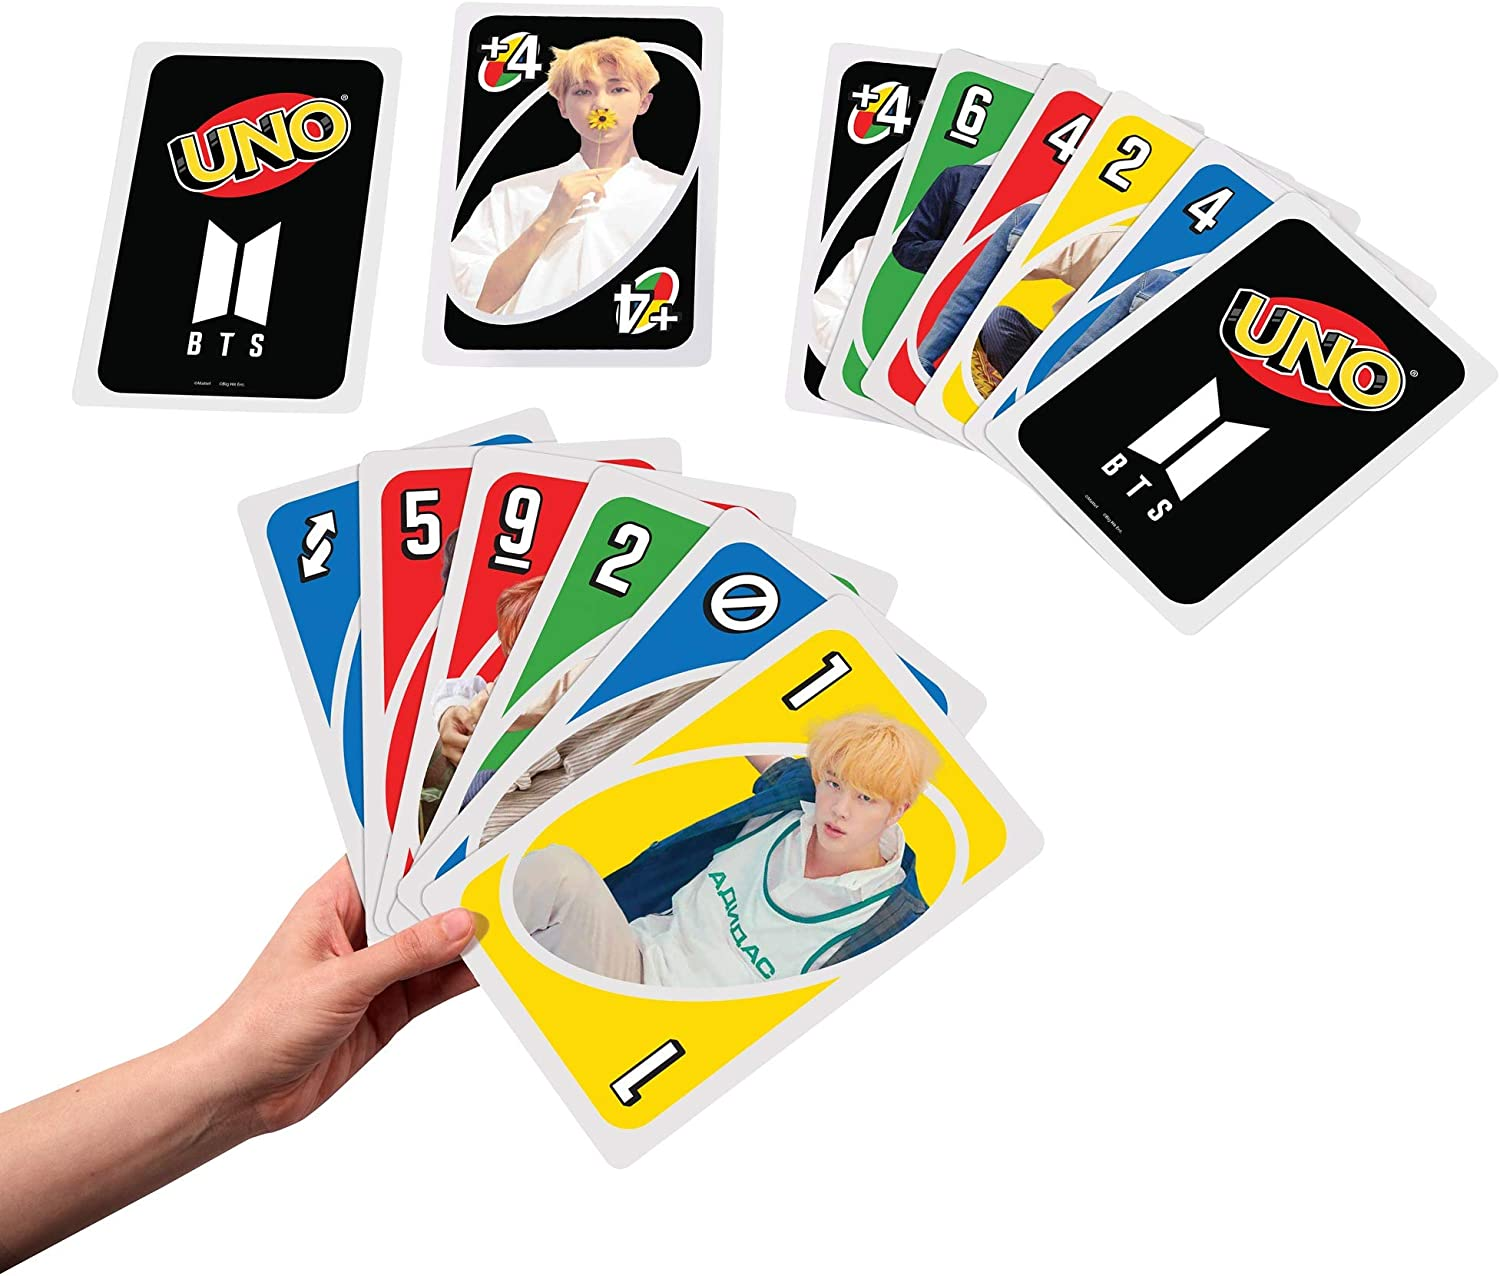 BTS UNO CARDS BRAND NEW Best Seller New